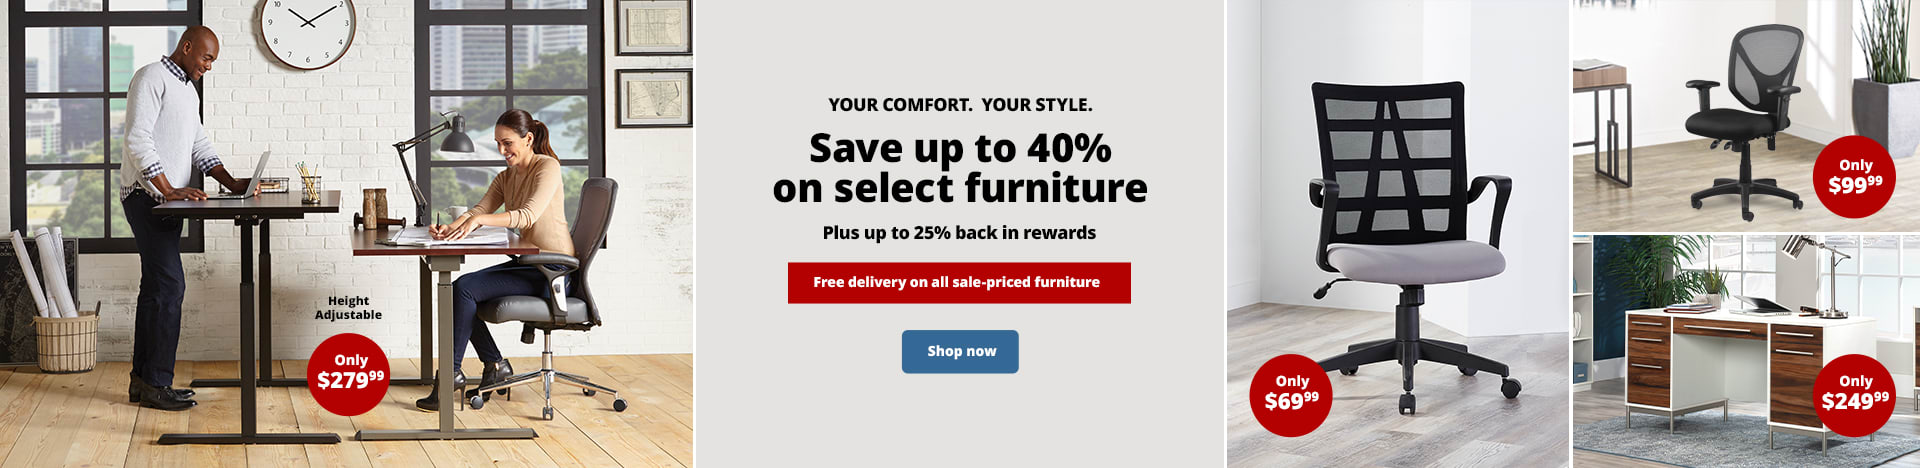 Your Comfort. Your Style. Save up to 40% on select furniture. Plus up to 25% back in rewards